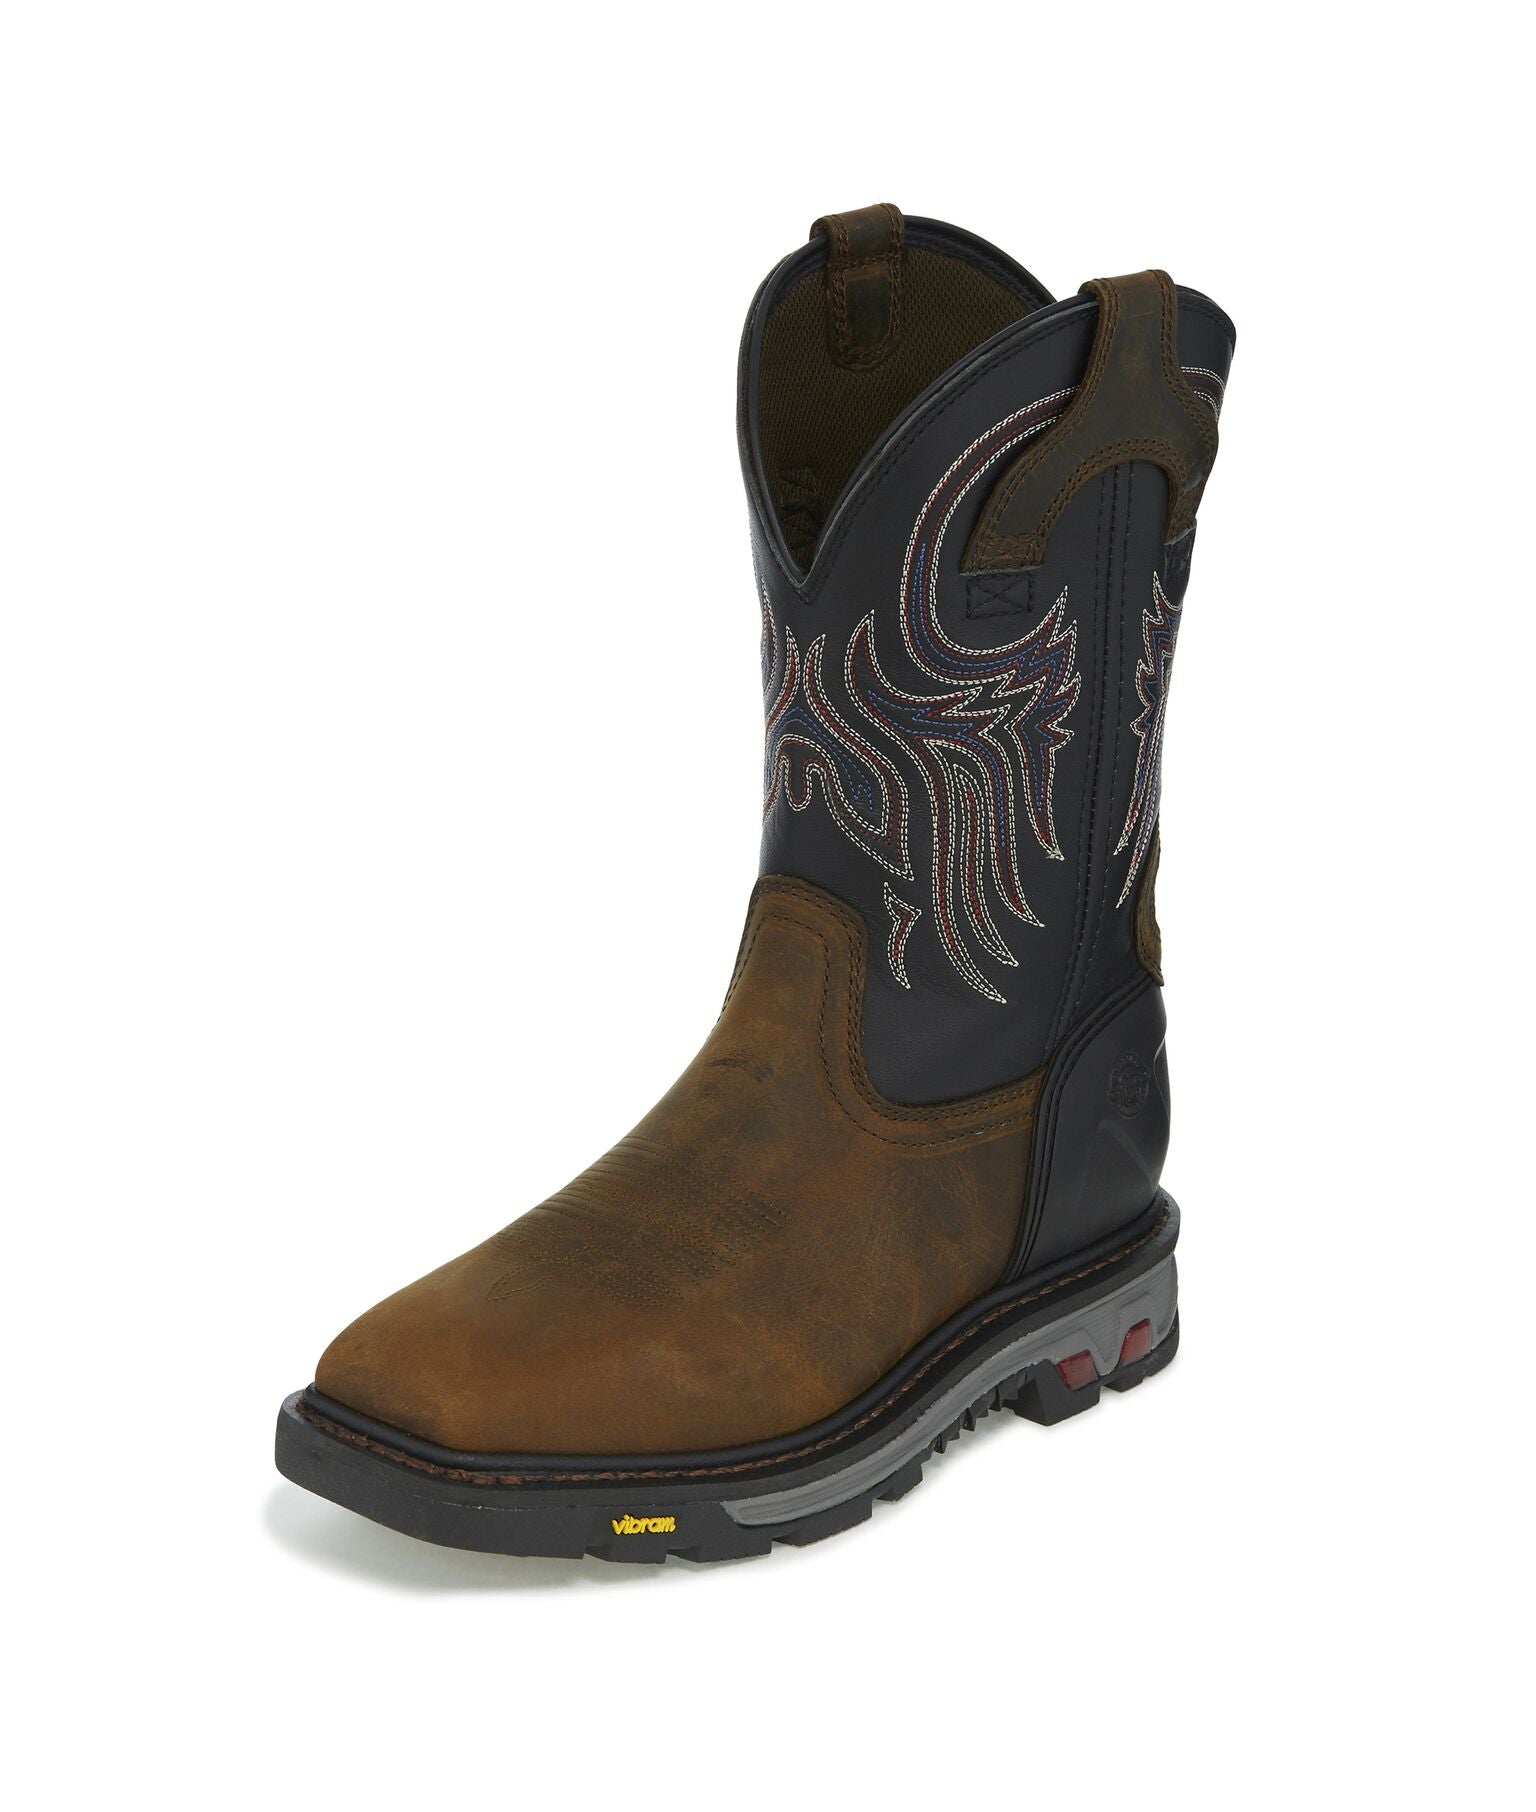 Tanker Square Toe Boot - Timber Black / Reddish Tan Buffalo